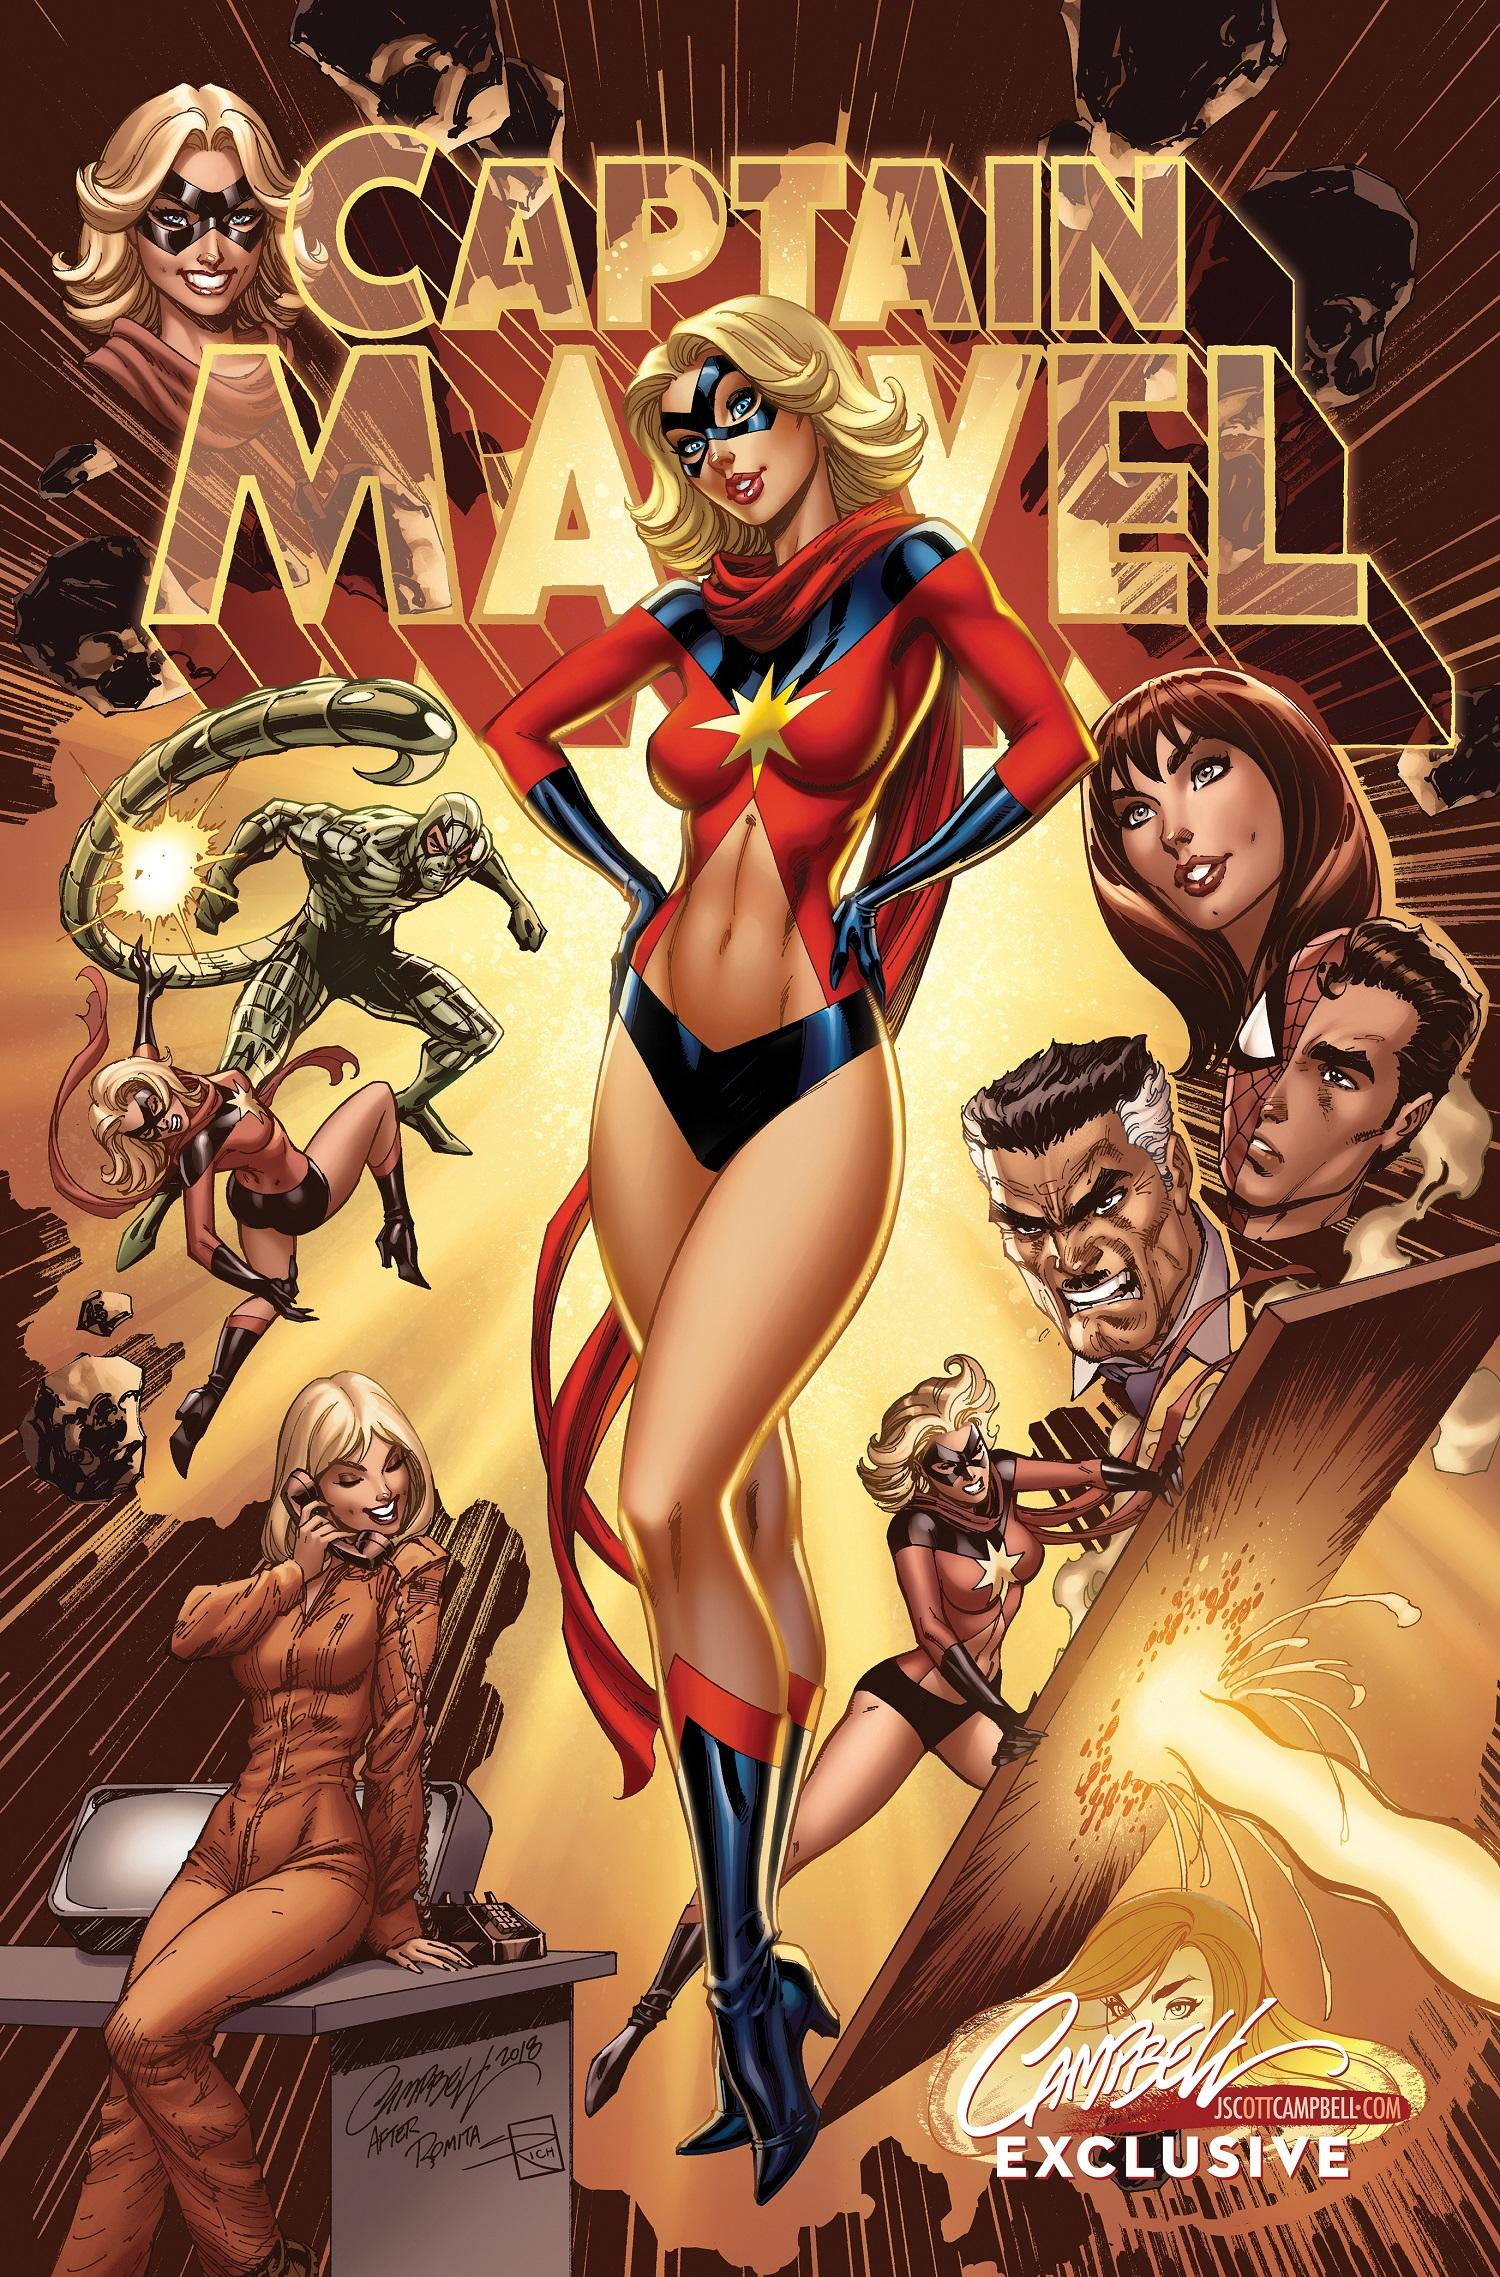 Captain Marvel #1 variant cover by J. Scott Campbell with colors by Sabine Rich